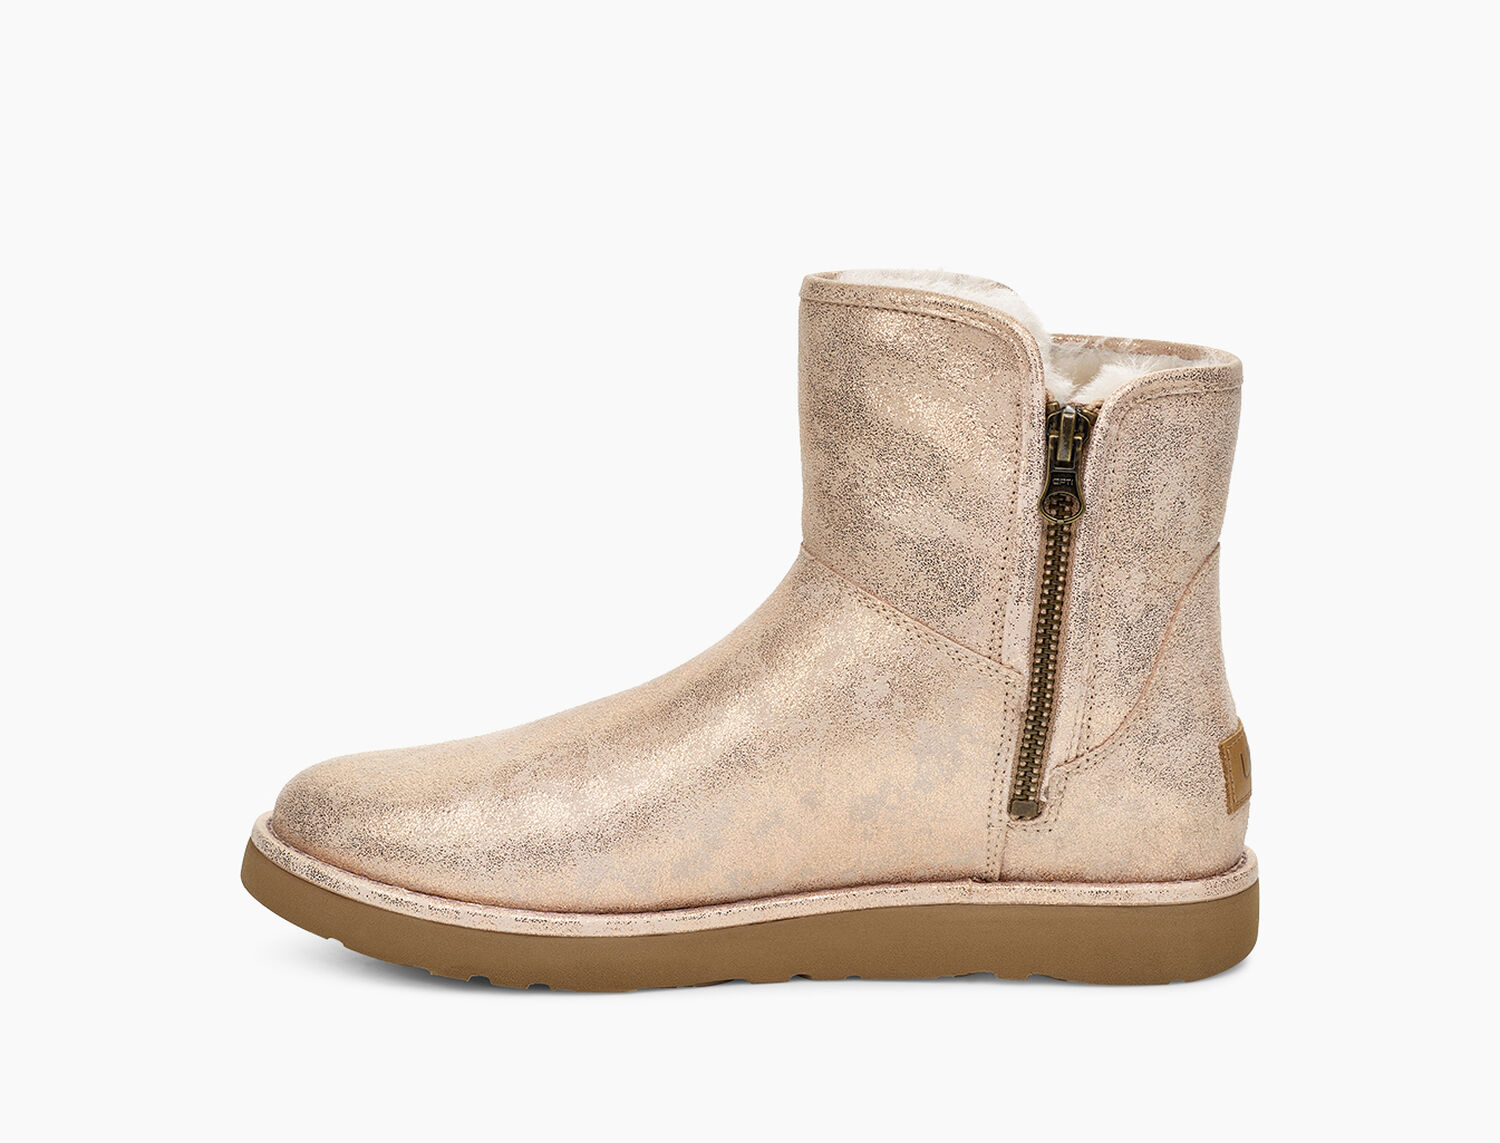 739e9d5bc24 Women's Share this product Abree Mini Stardust Boot